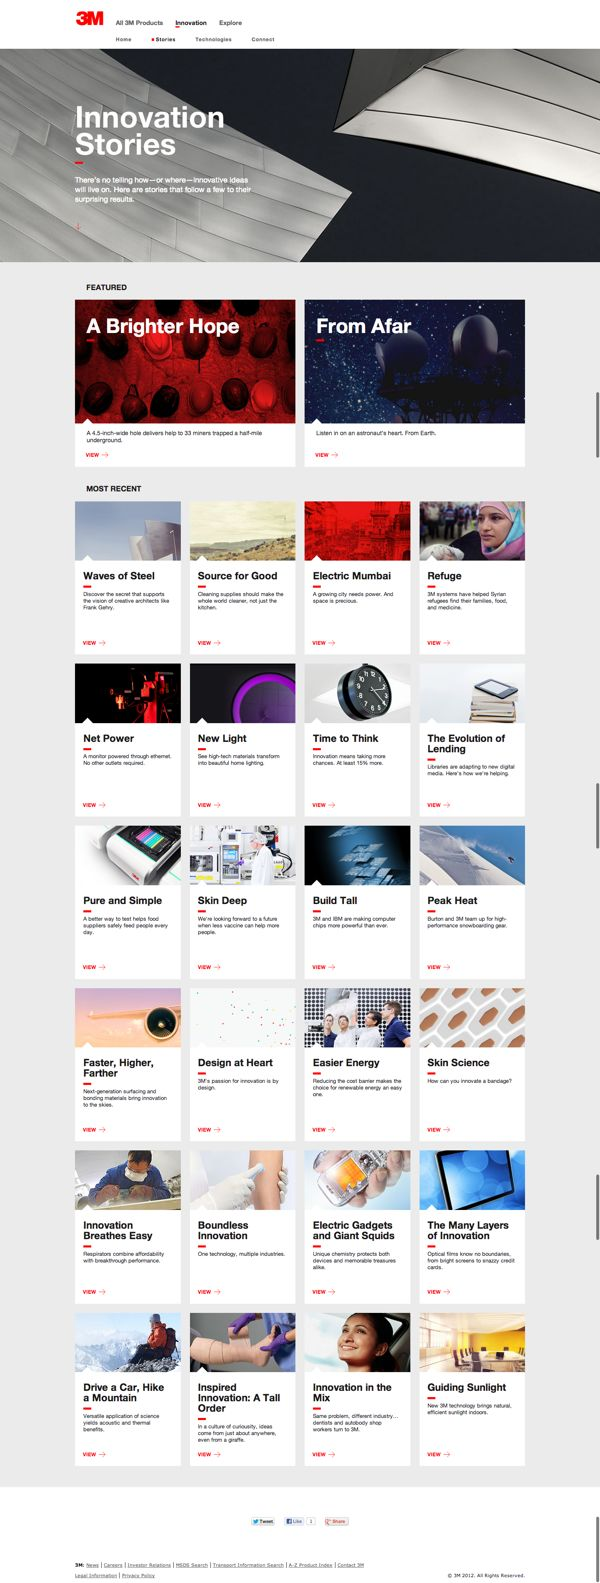 3M Innovation Website #webdesign #design #designer #inspiration #user #interface #ui